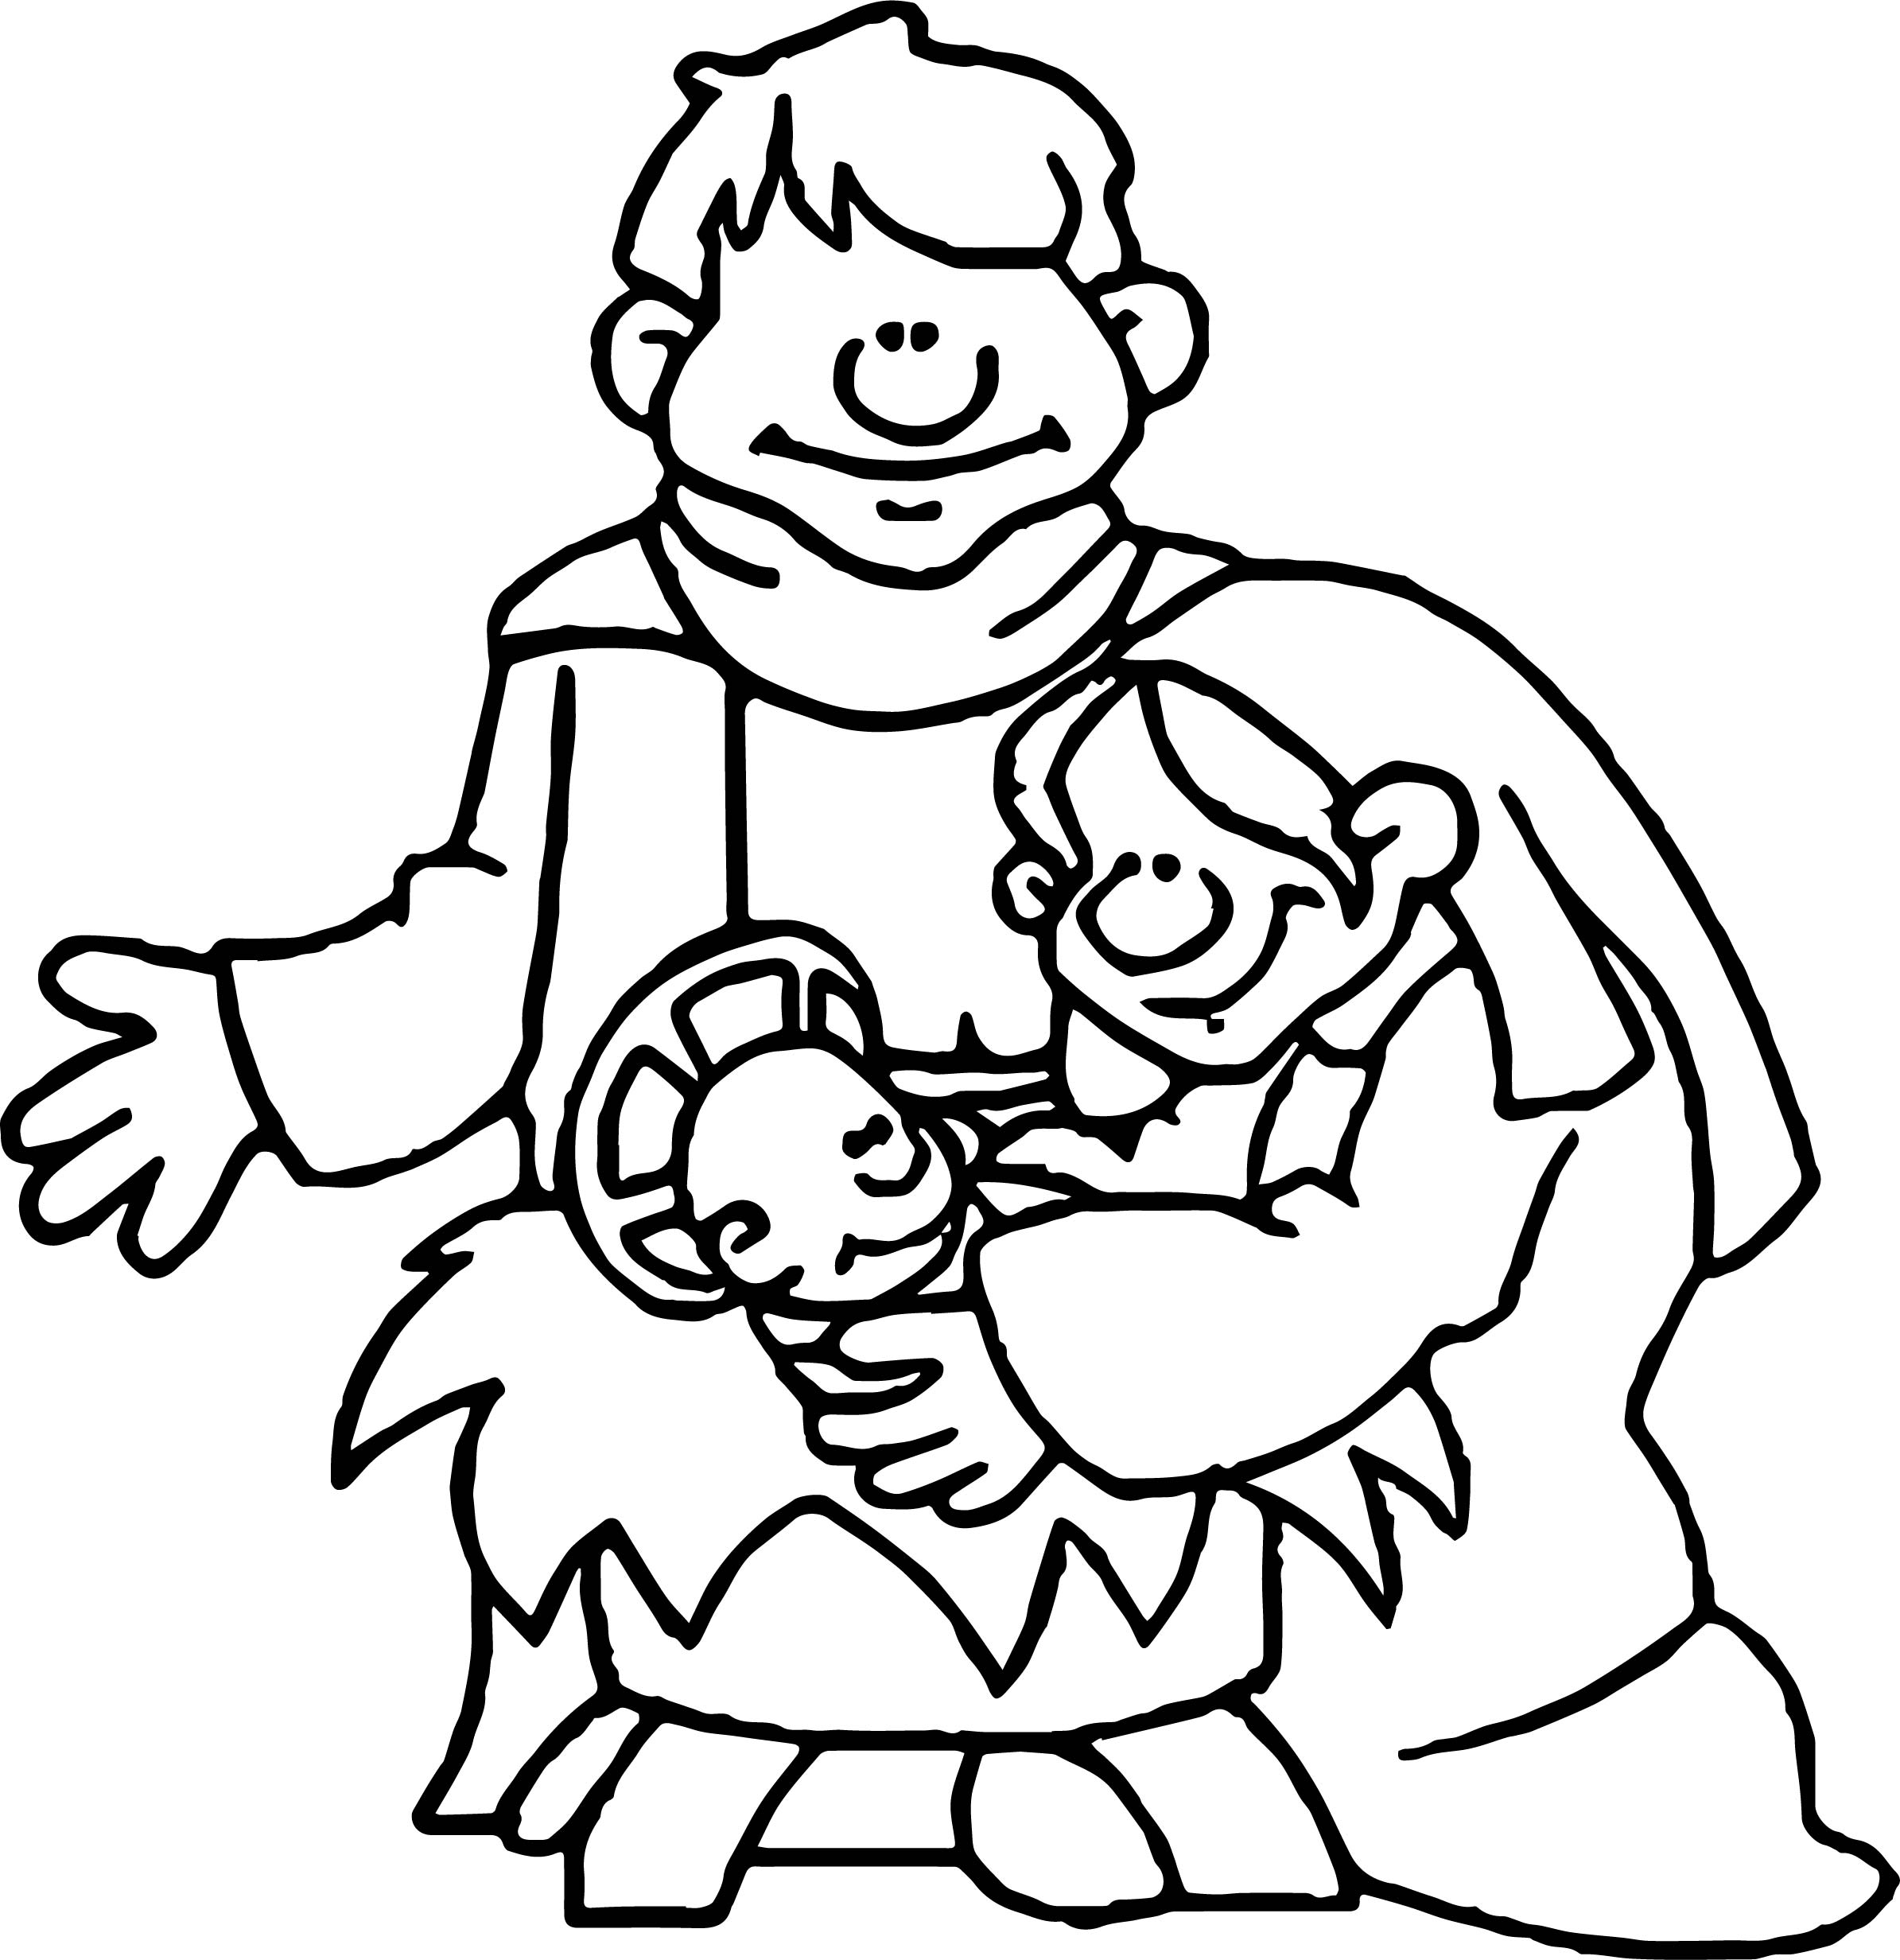 Apostle paul family baby coloring page for Apostle paul coloring page